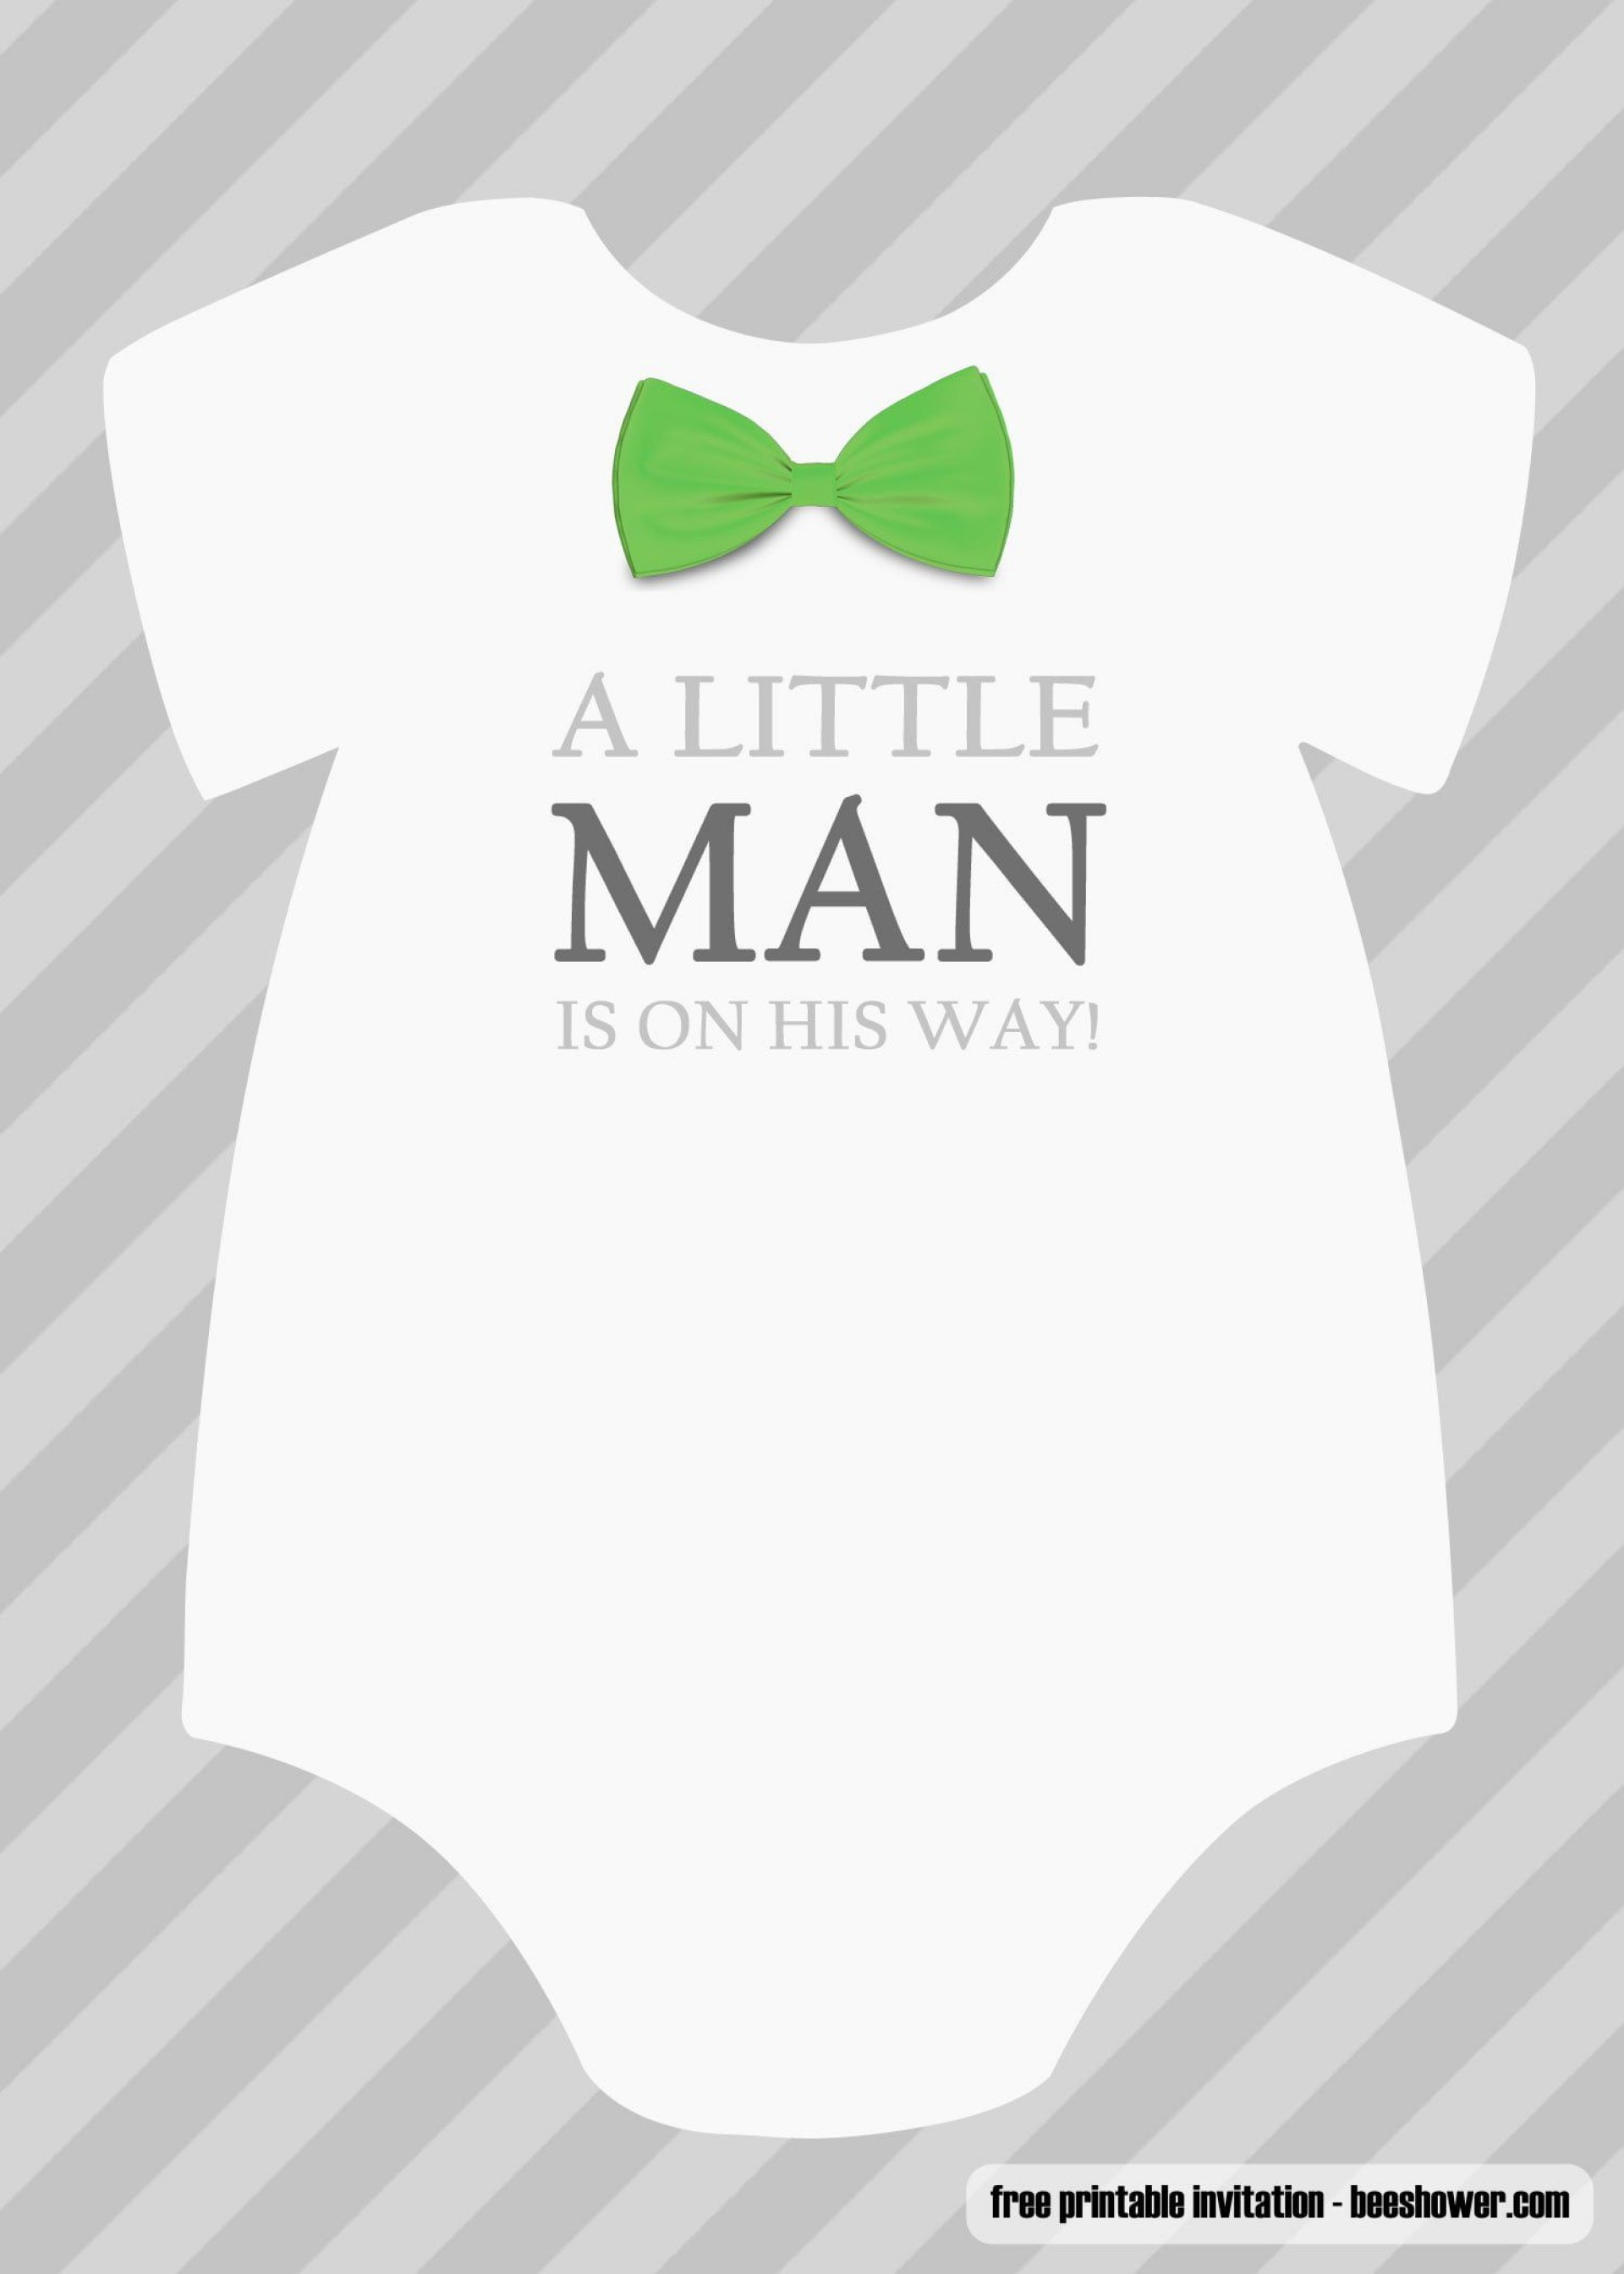 003 Archaicawful Free Baby Shower Invitation Template For Boy Concept 1920